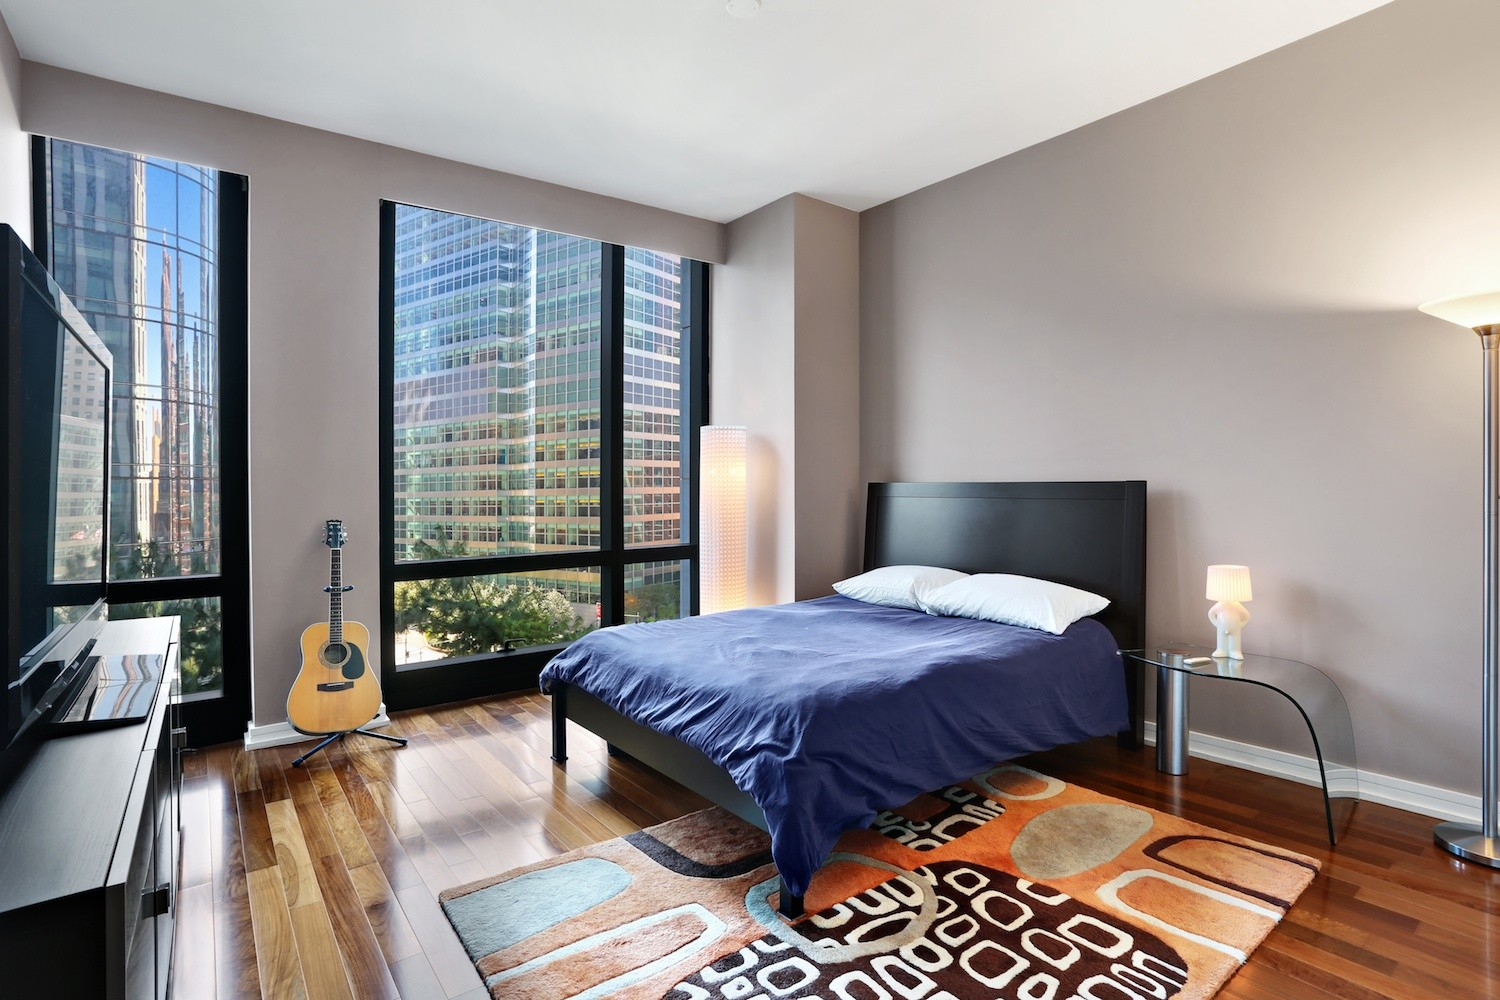 Apartment for sale at 101 Warren Street, Apt 890